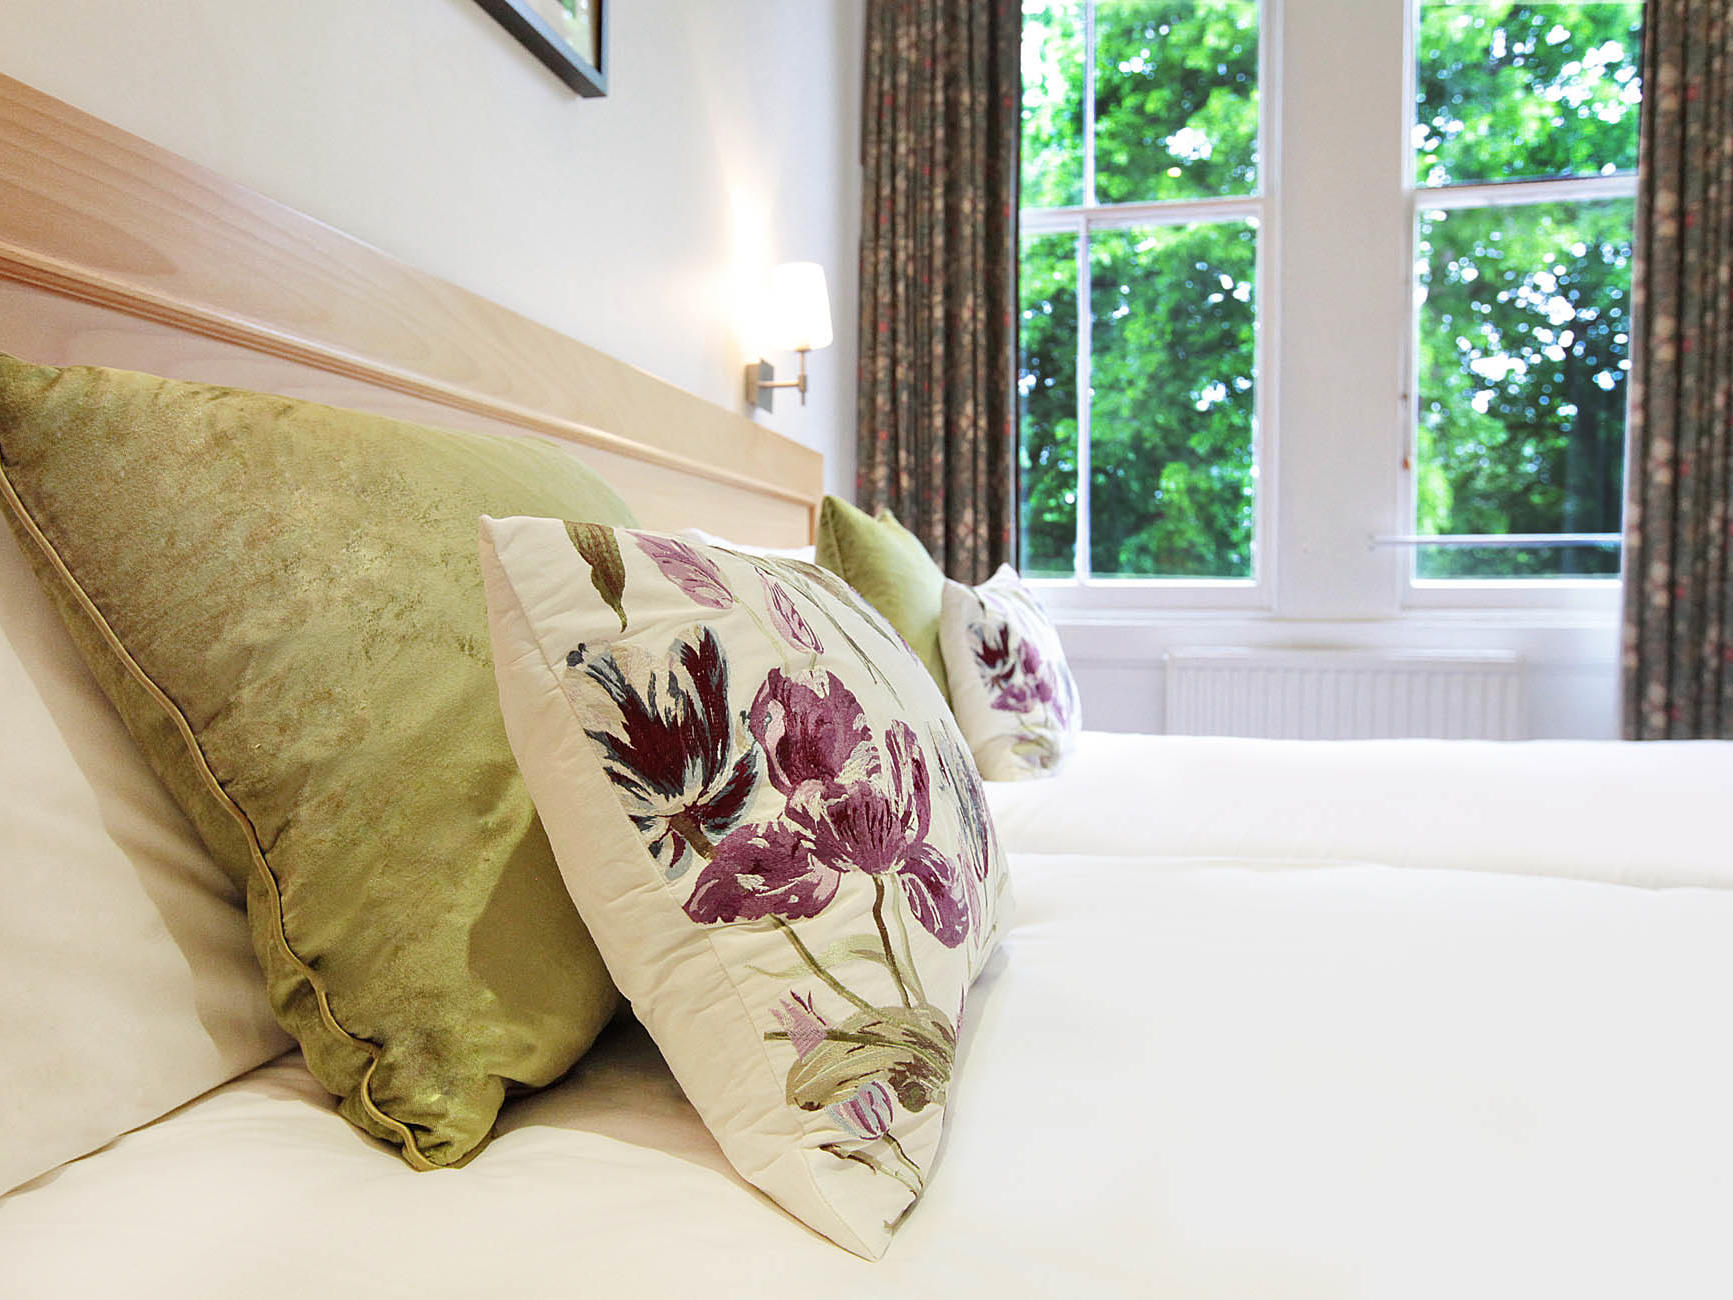 A truly unbeatable £25 room rate at Victoria Square Hotel